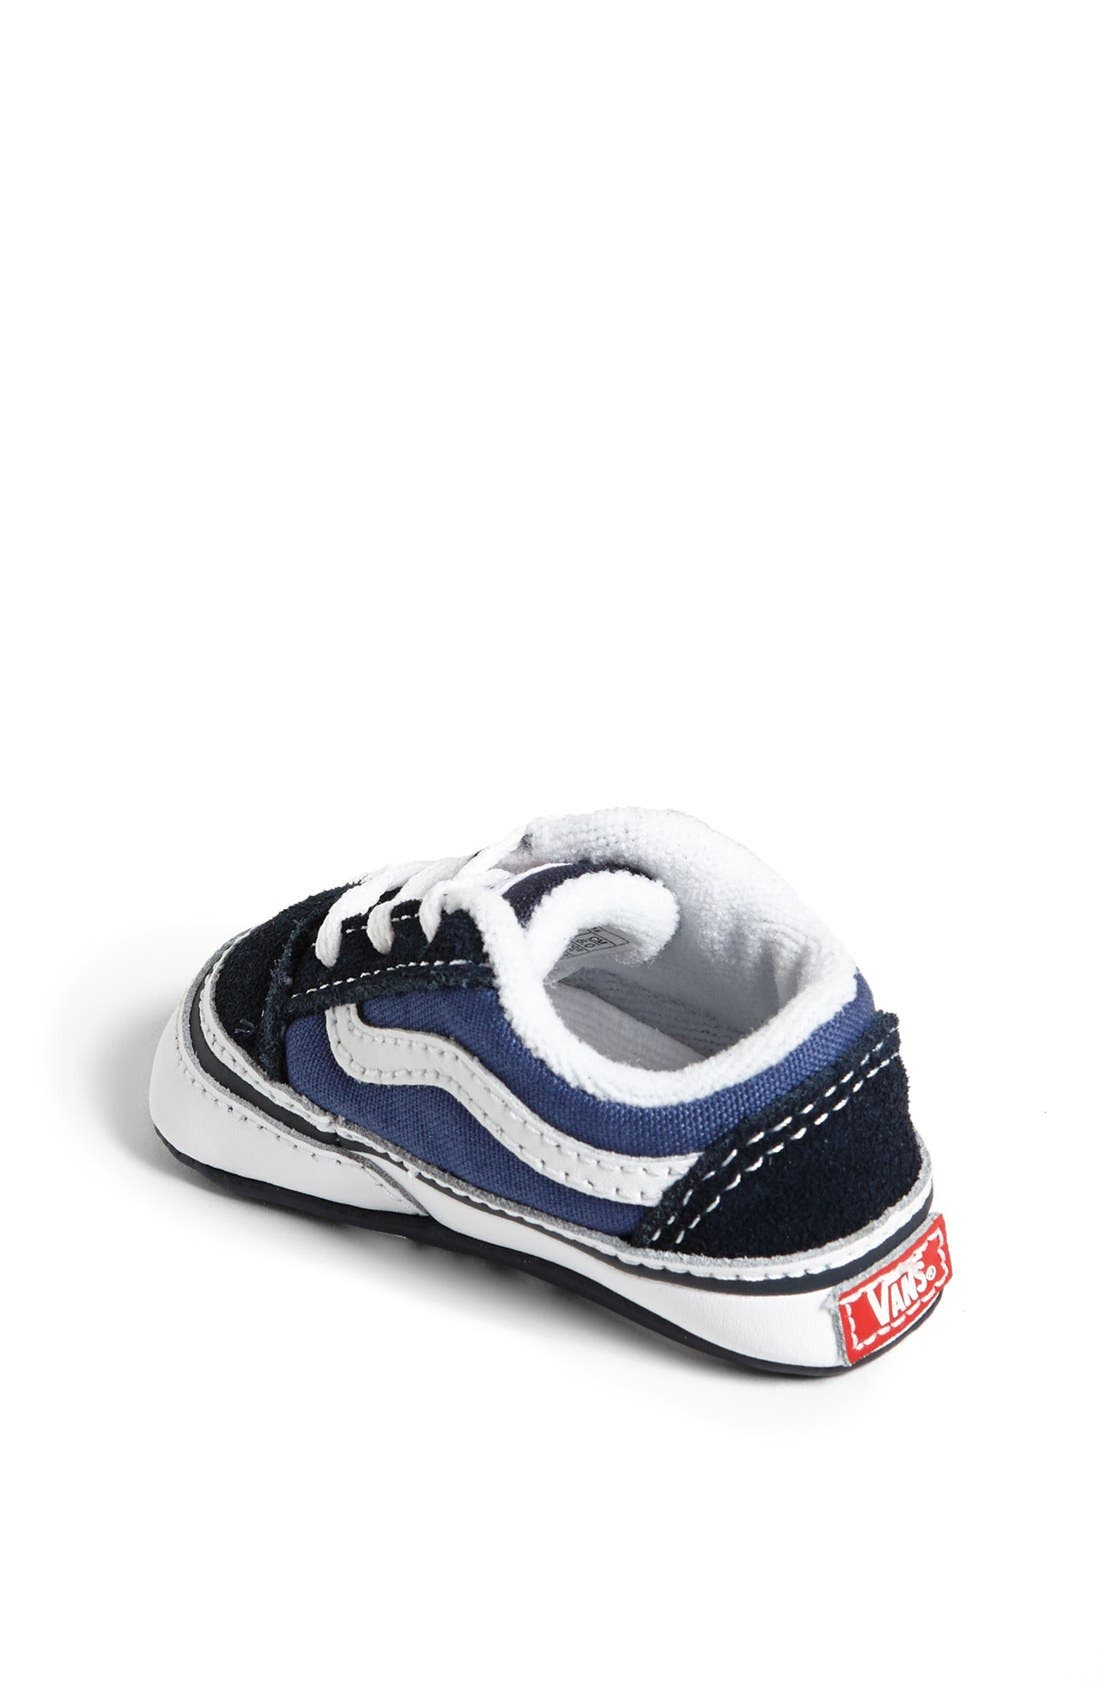 Alternate Image 2  - Vans 'Old Skool' Crib Shoe (Baby)